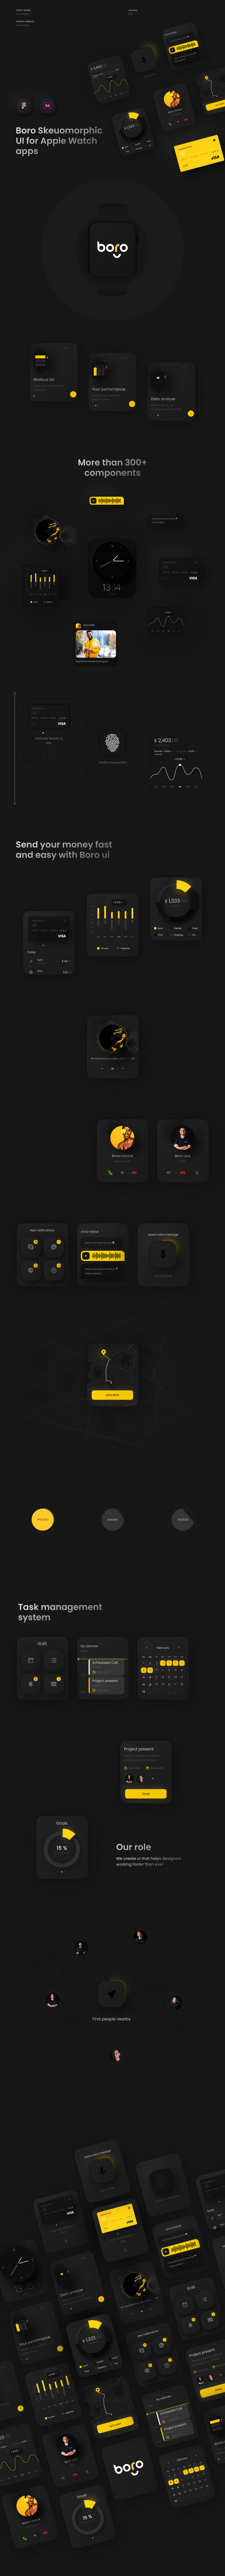 Boro Free Apple Watch Apps UI Kit - A clean and modern look for the Apple Watch user interface.